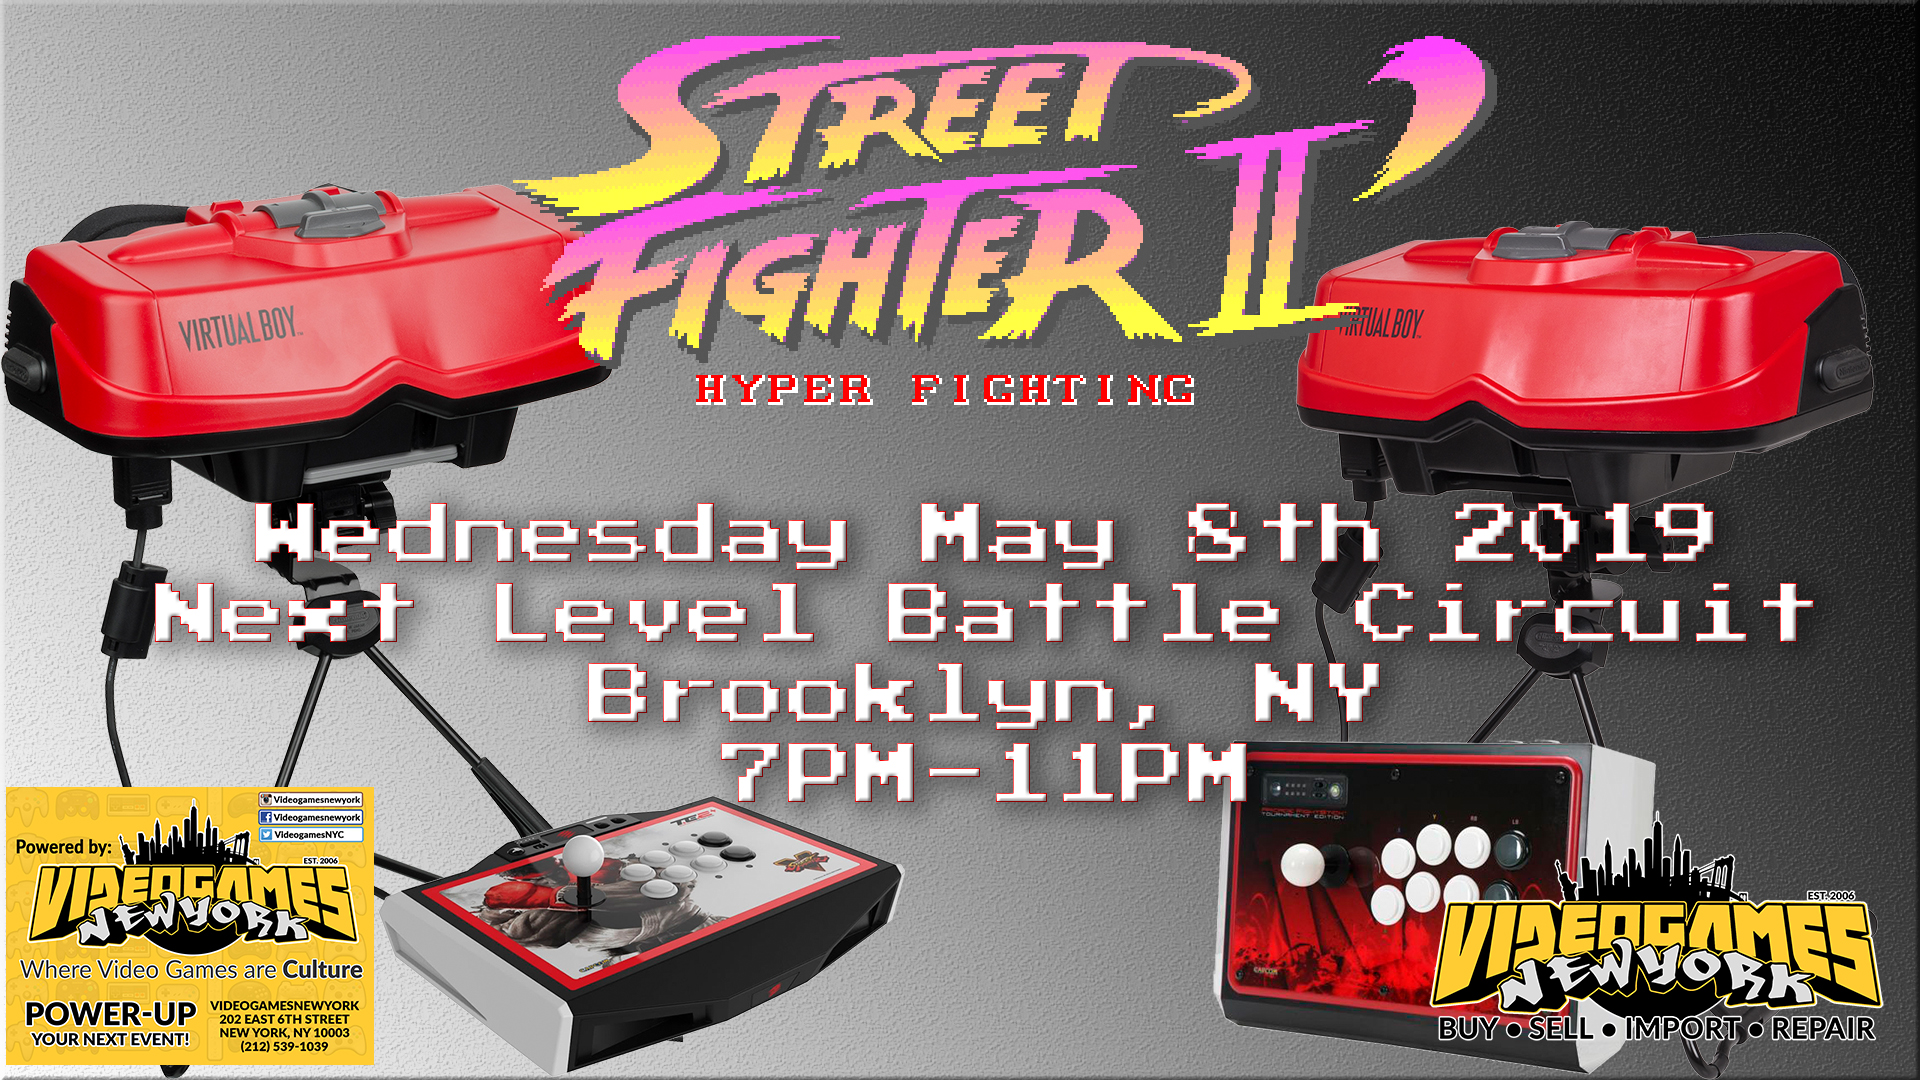 Virtual Boy Hyper Fighting LIVE NYC Event